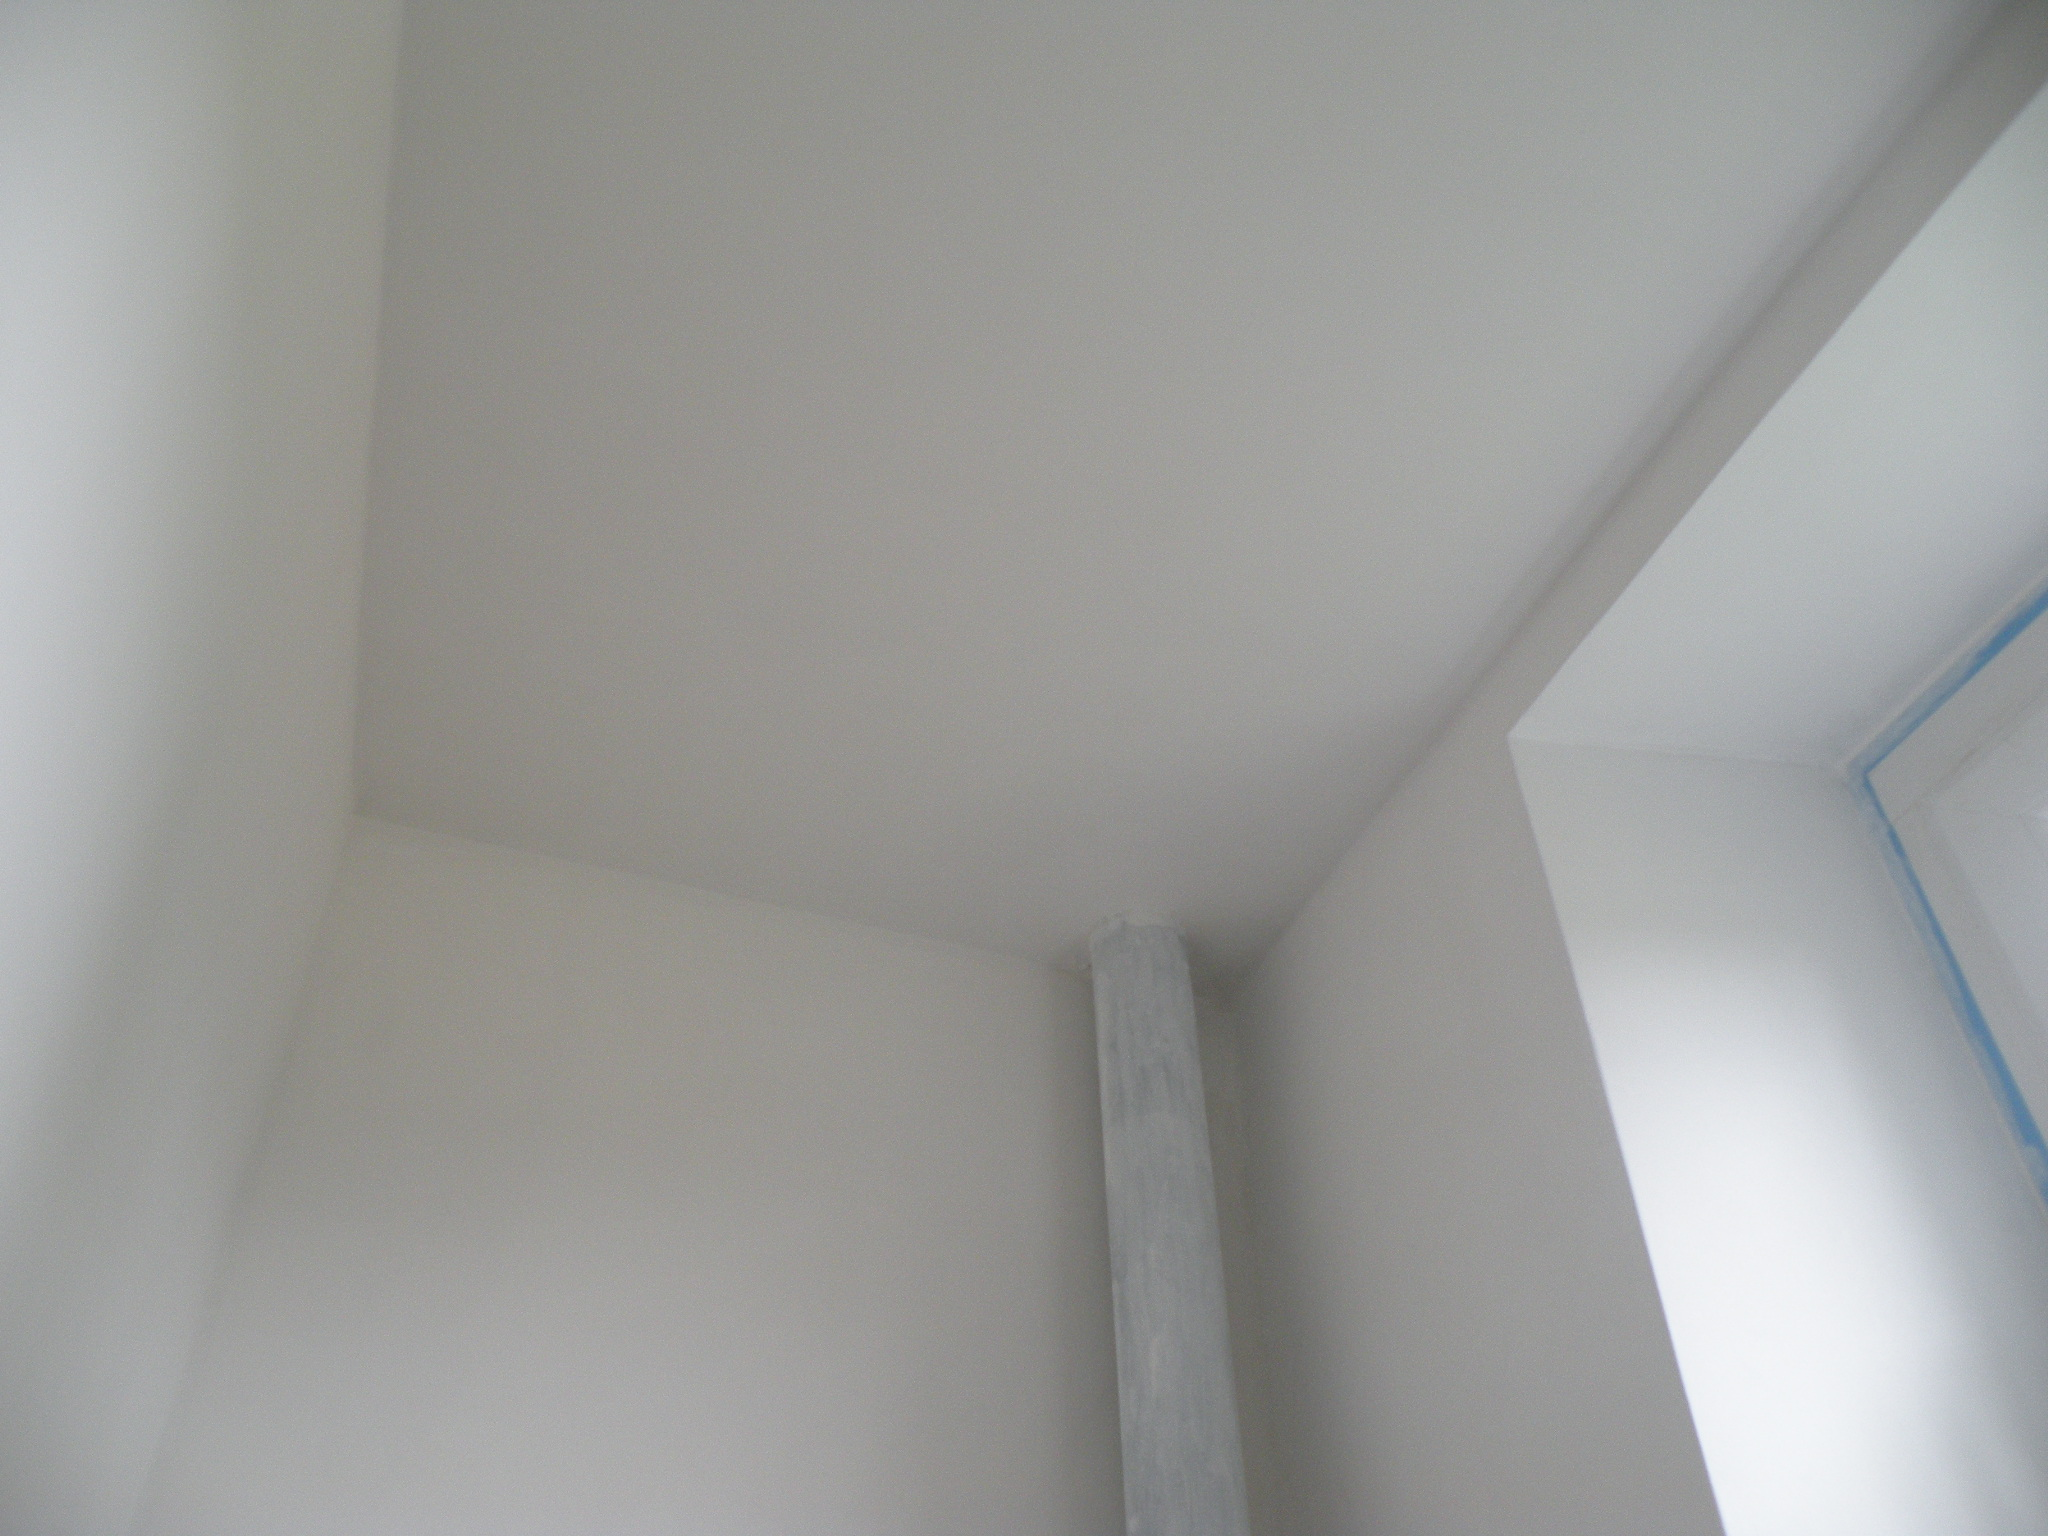 Faux plafond placo peinture saint denis prix de for Faux plafond renovation